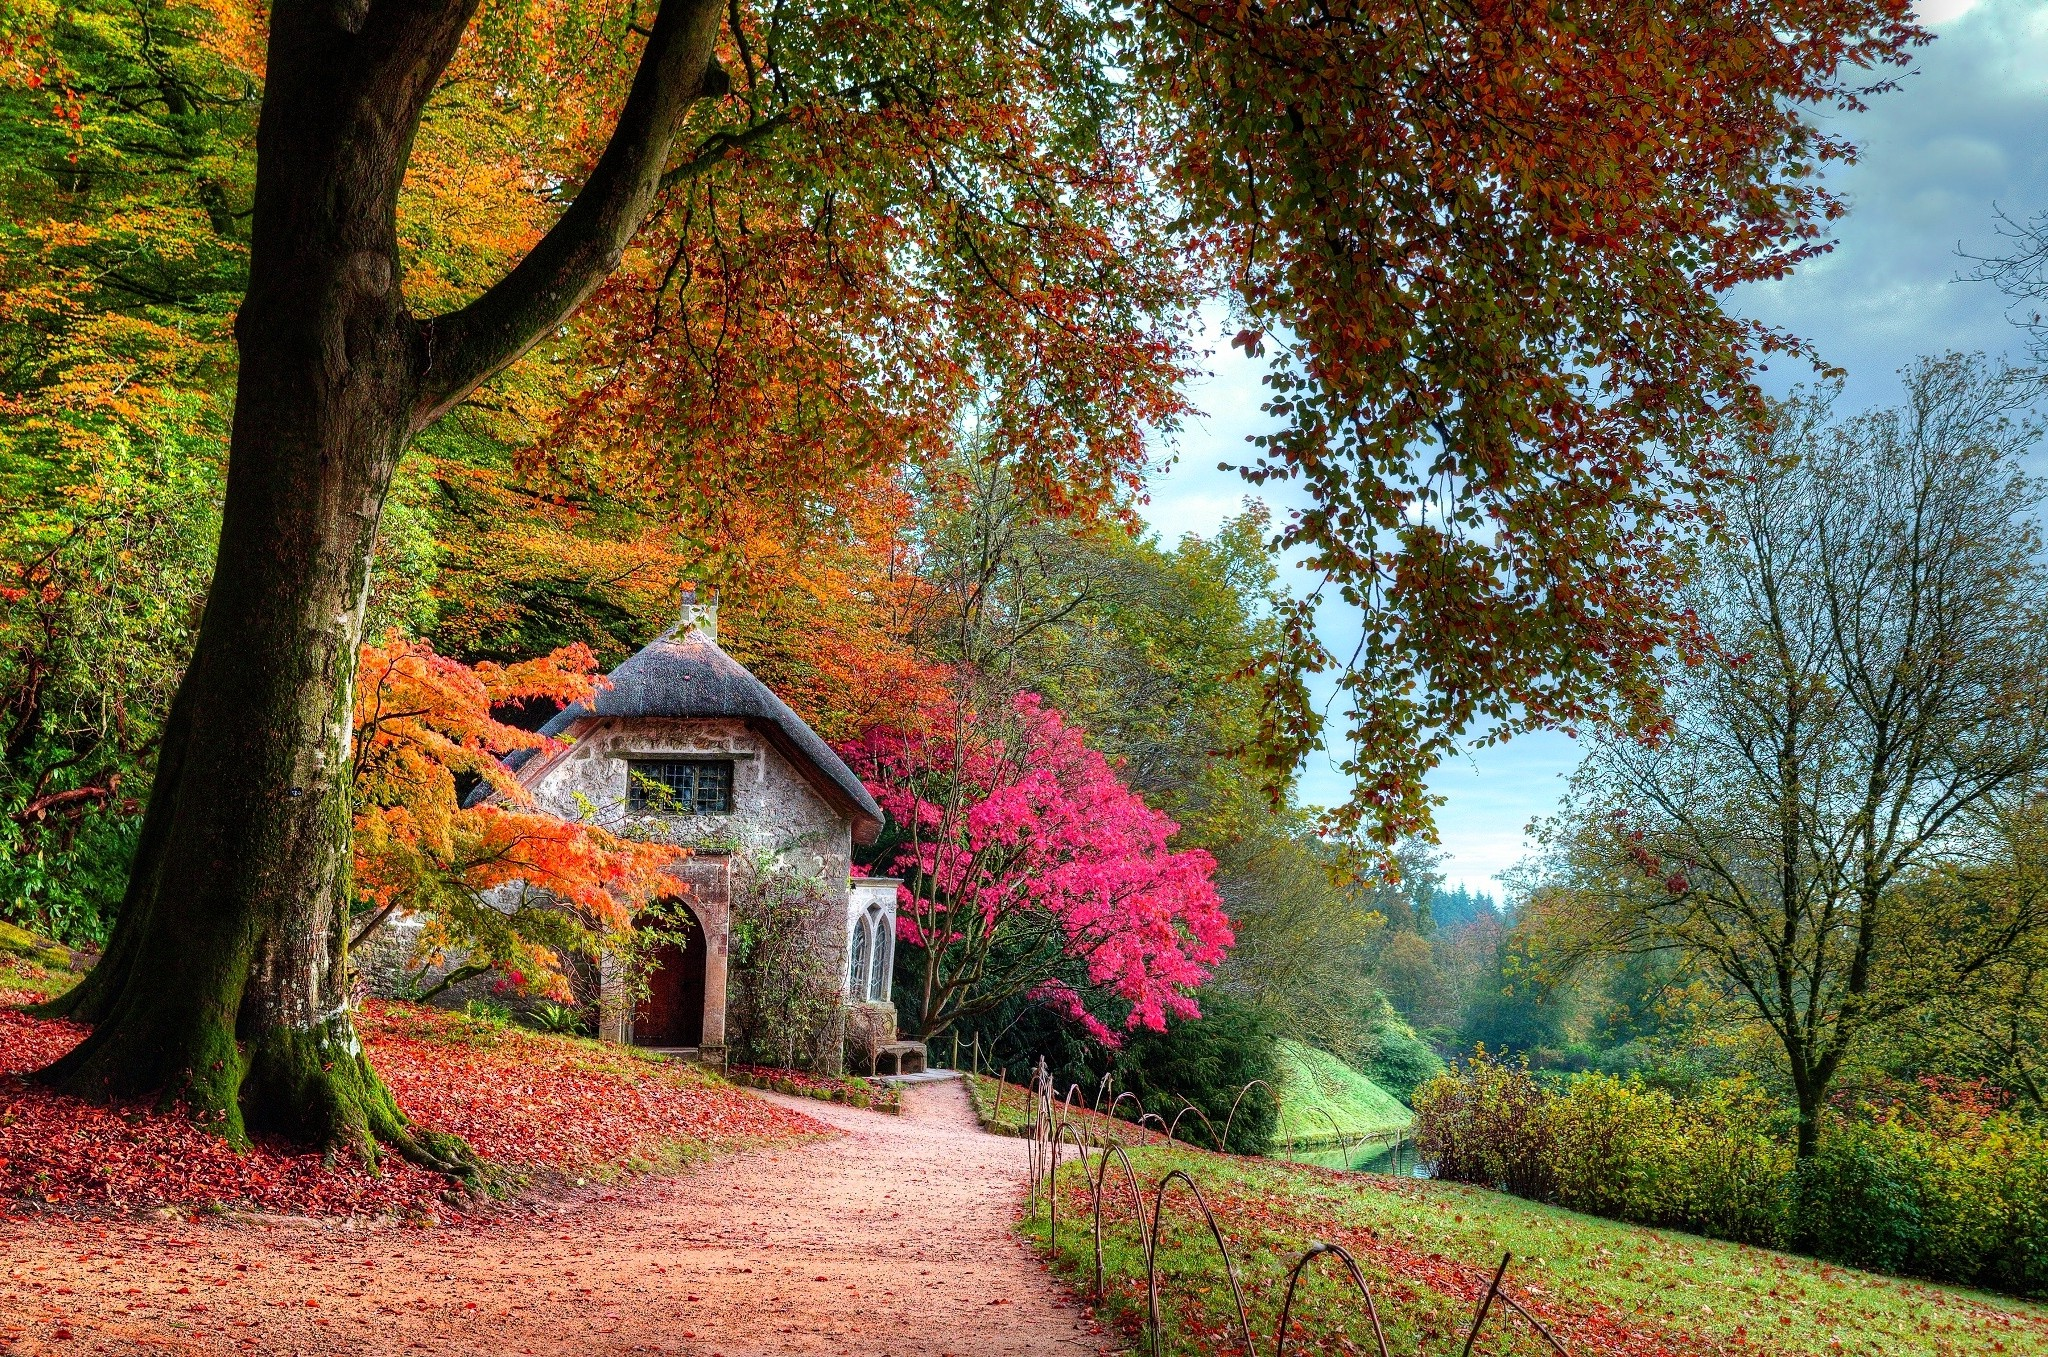 Fall New England Wallpaper Fall Garden Cottage Leaves Trees Lawns Shrubs Pink